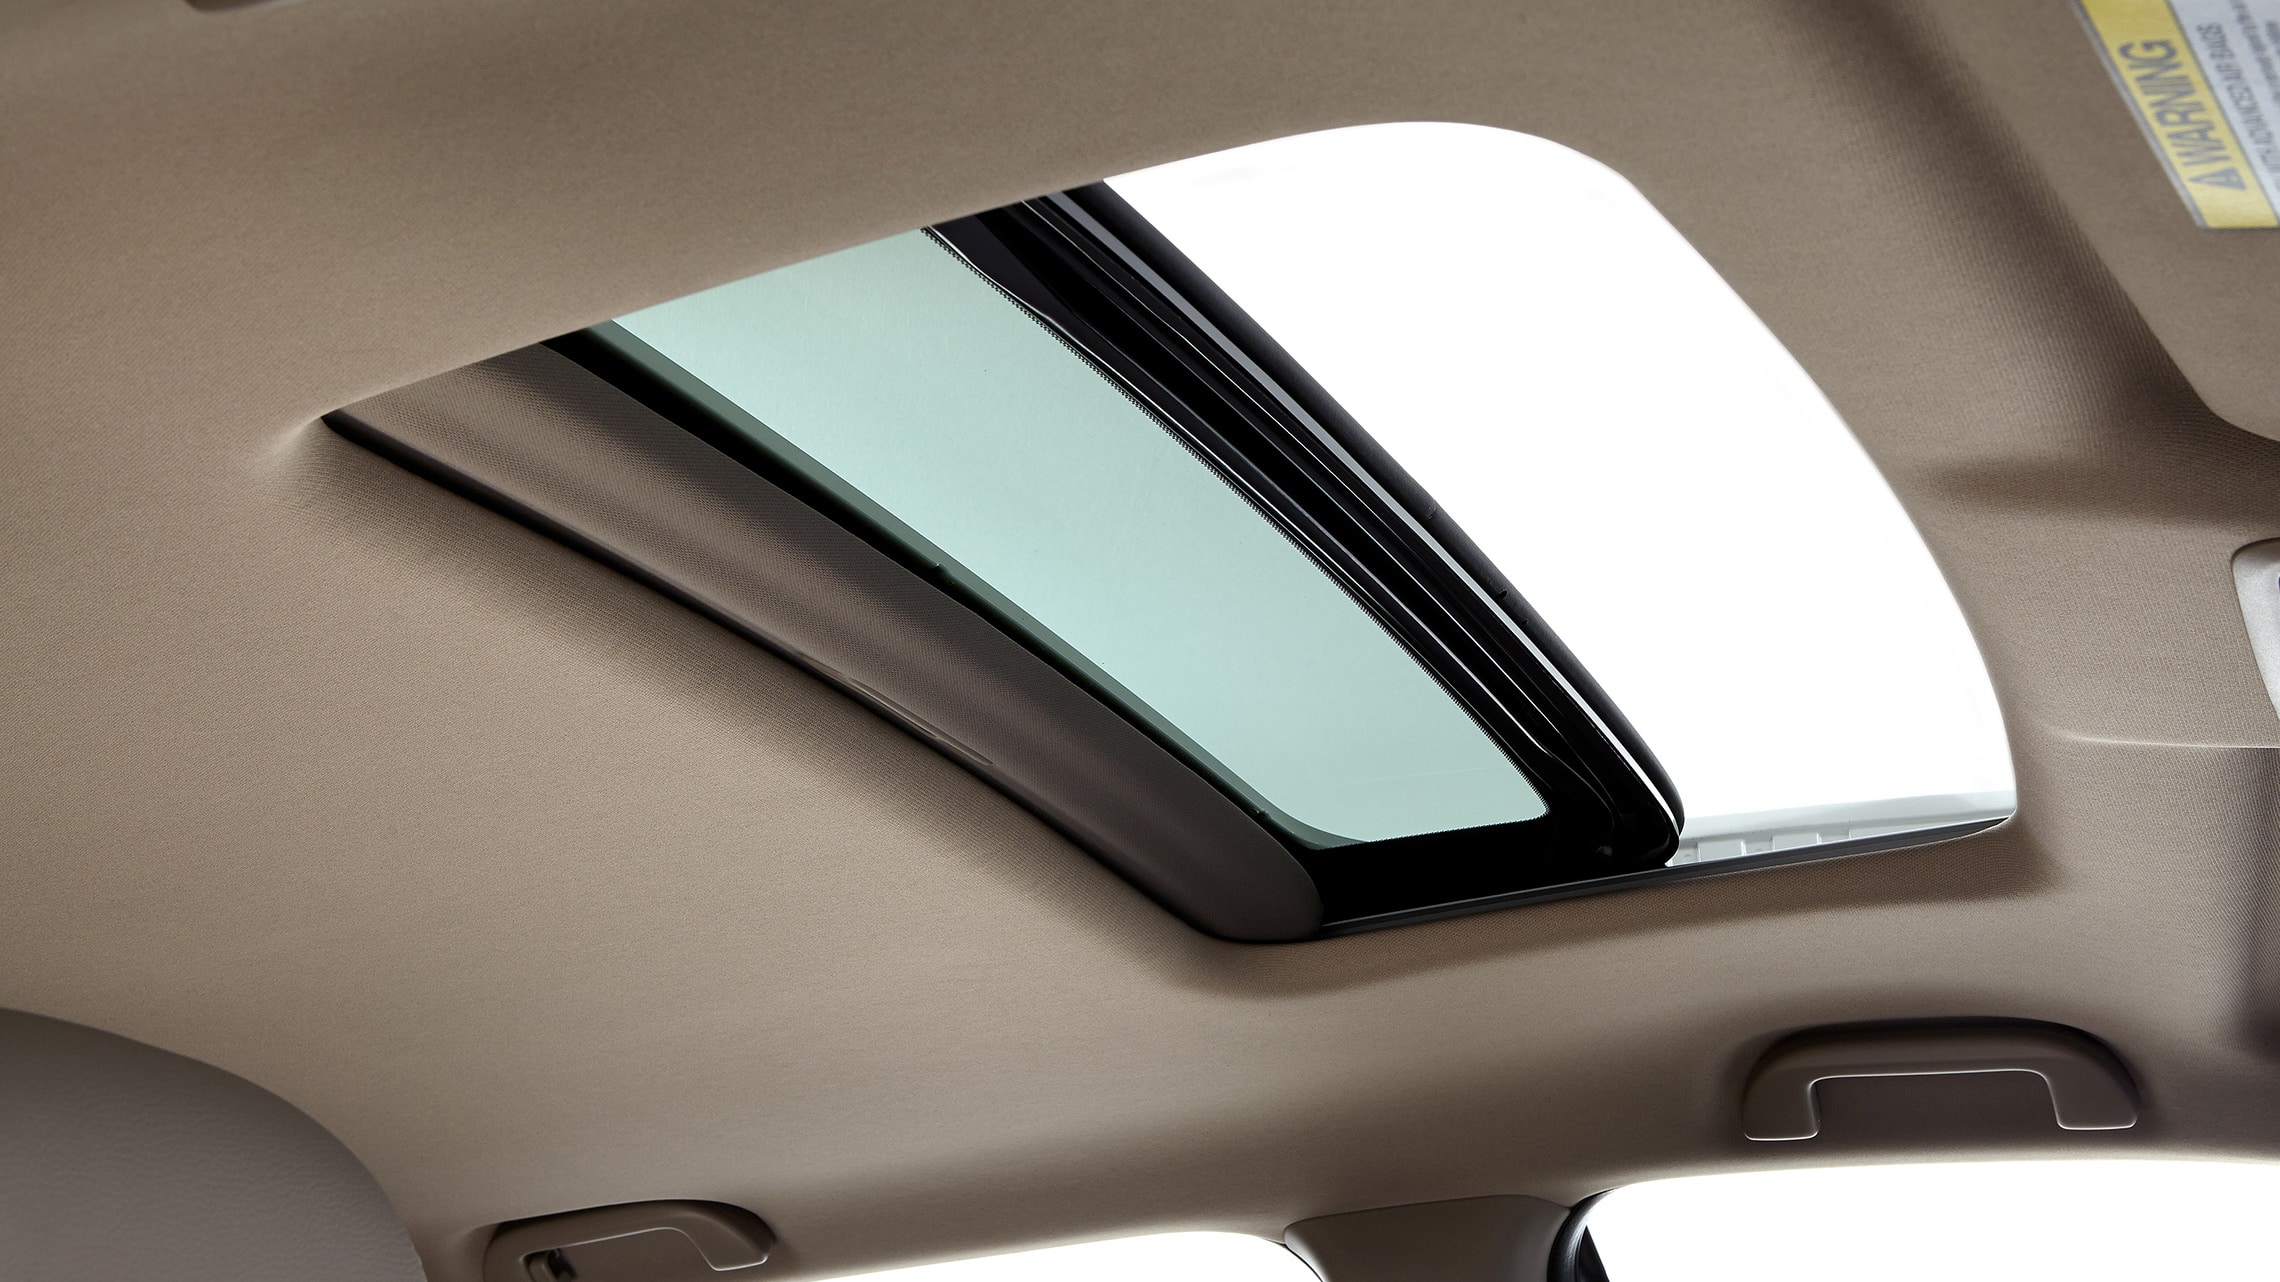 One-Touch Power Moonroof detail on 2020 Honda Pilot EX-L with Beige interior.